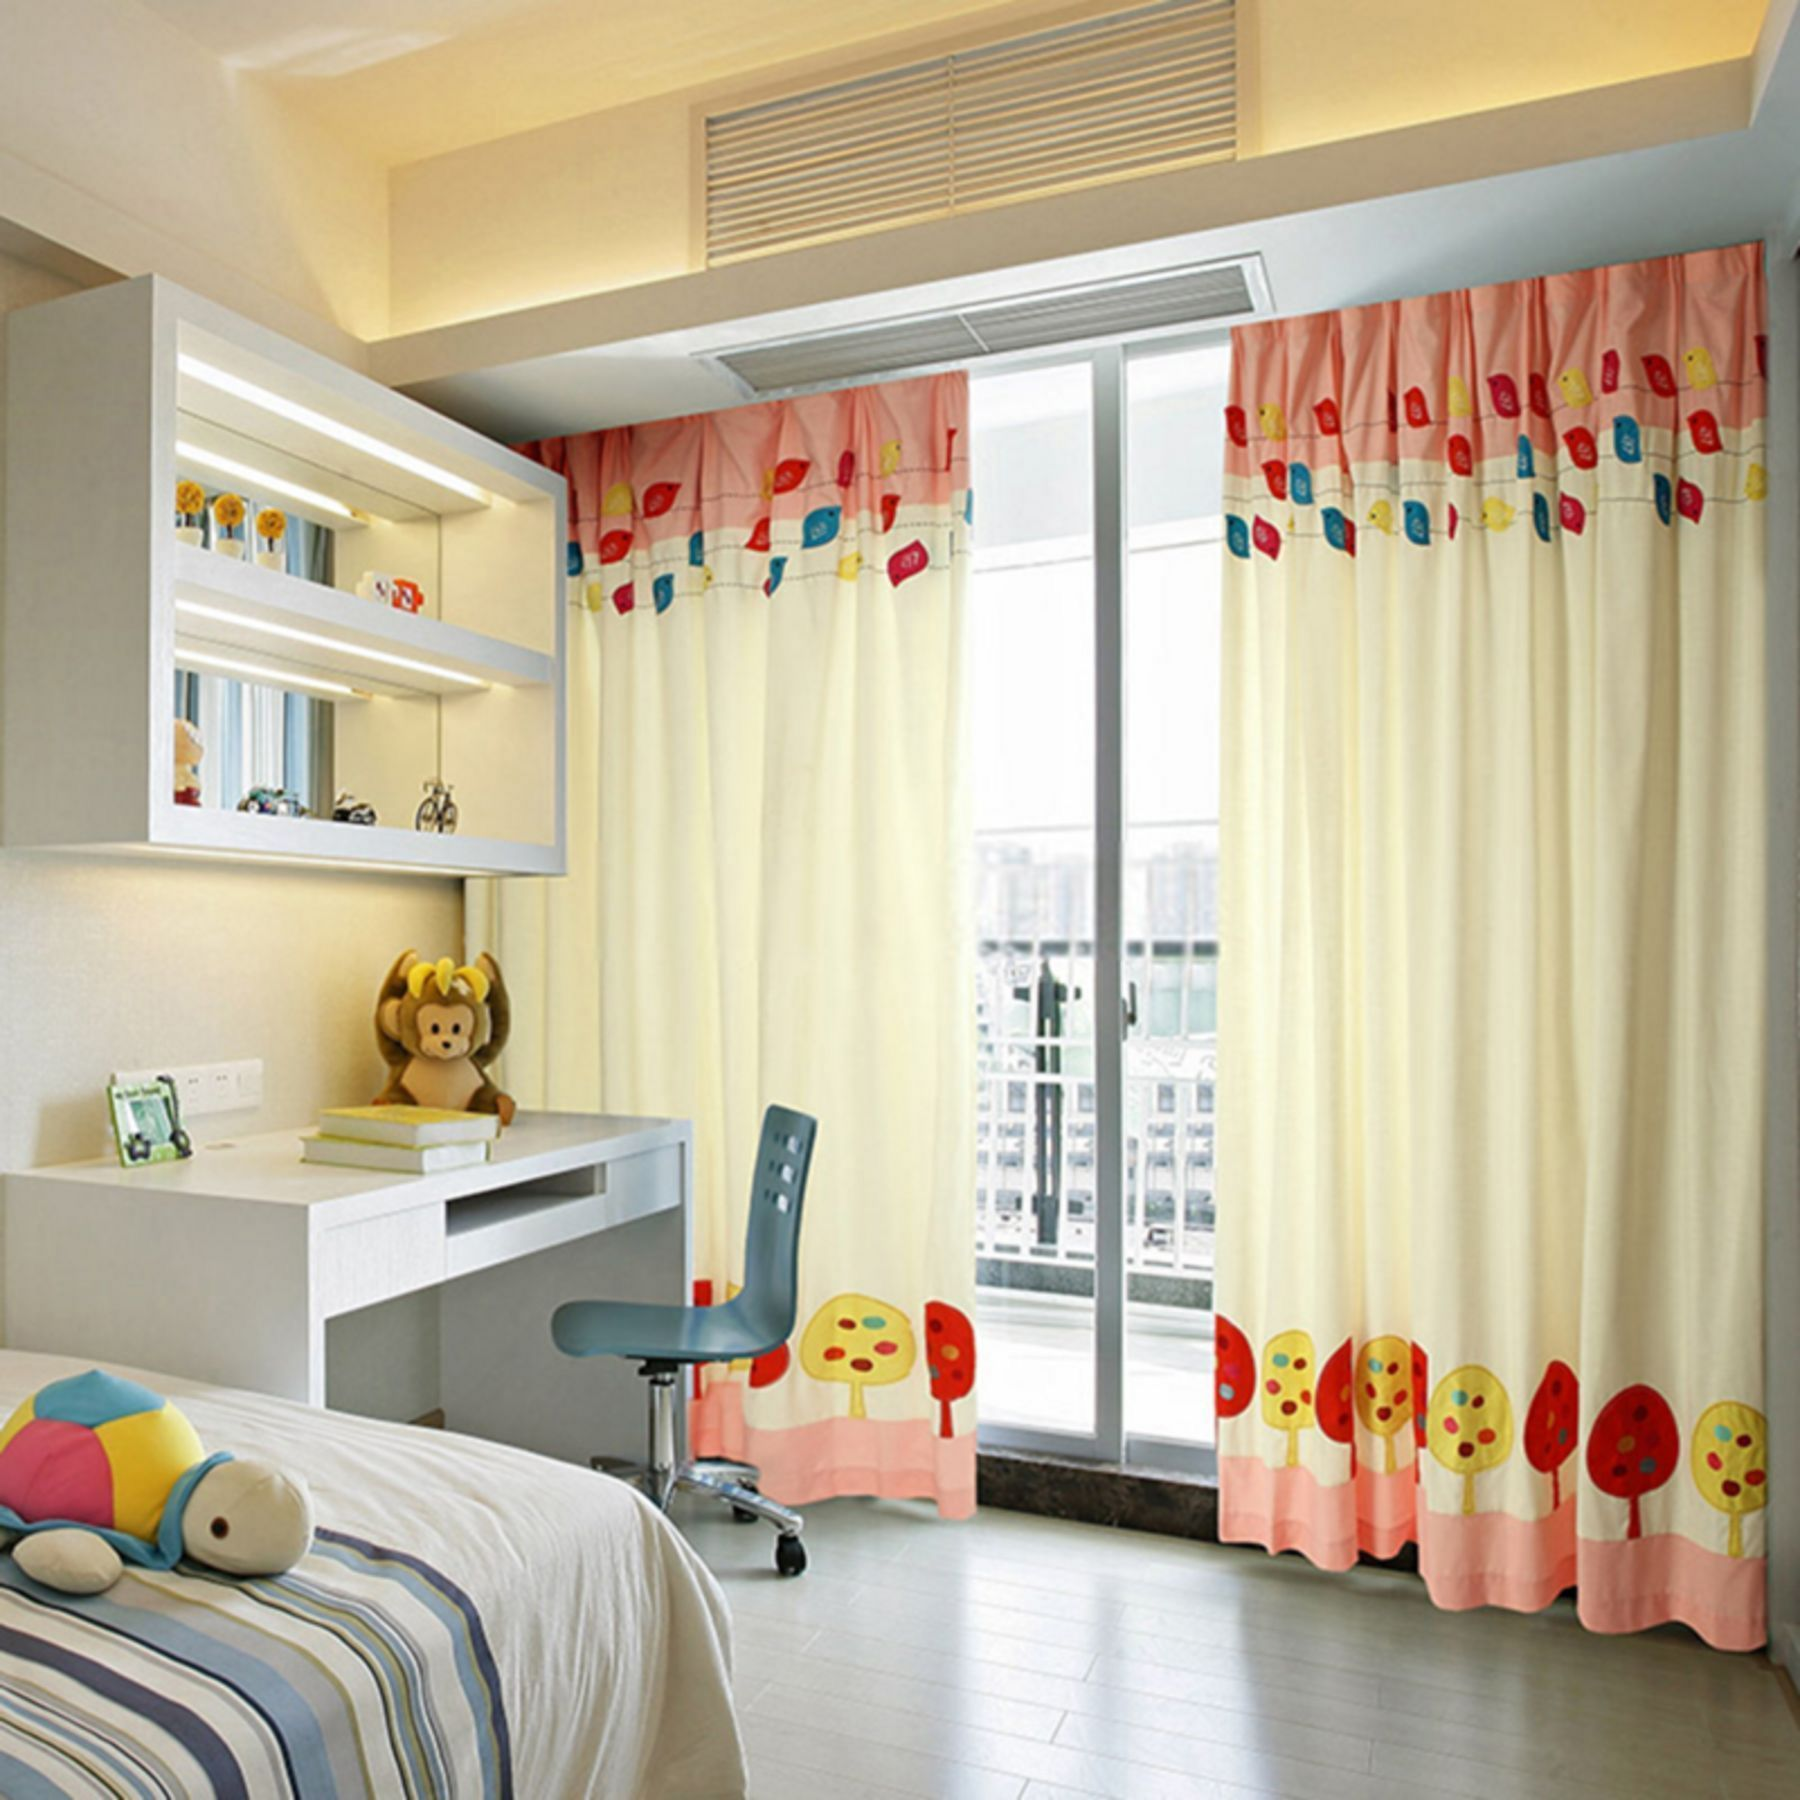 7 Amazing Bedroom Curtains Idea For Bedrooms To Make It More Interesting Bedroomcurtains C Kids Blackout Curtains Kids Room Curtains Kids Bedroom Diy